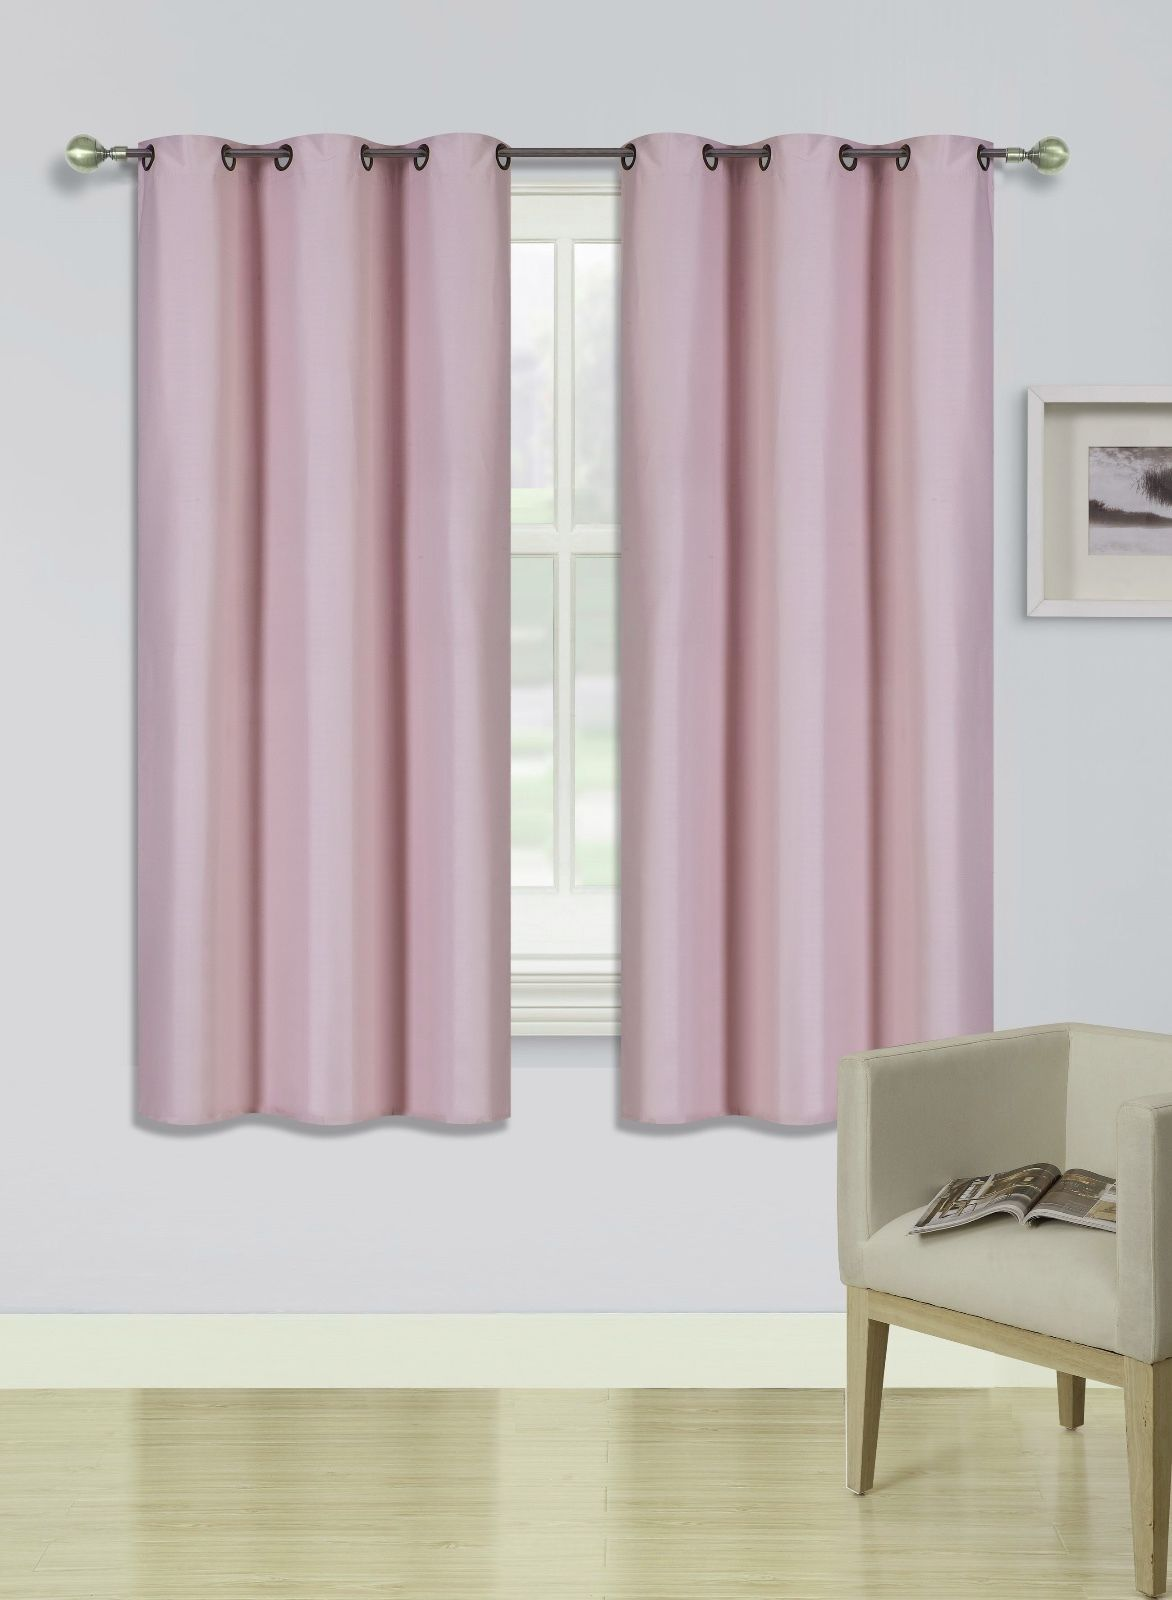 """(SSS) 2-PC Pink Solid Blackout Room Darkening Panel Curtain Set, Two (2) Window Treatments of 37"""" Wide x 63""""... by"""